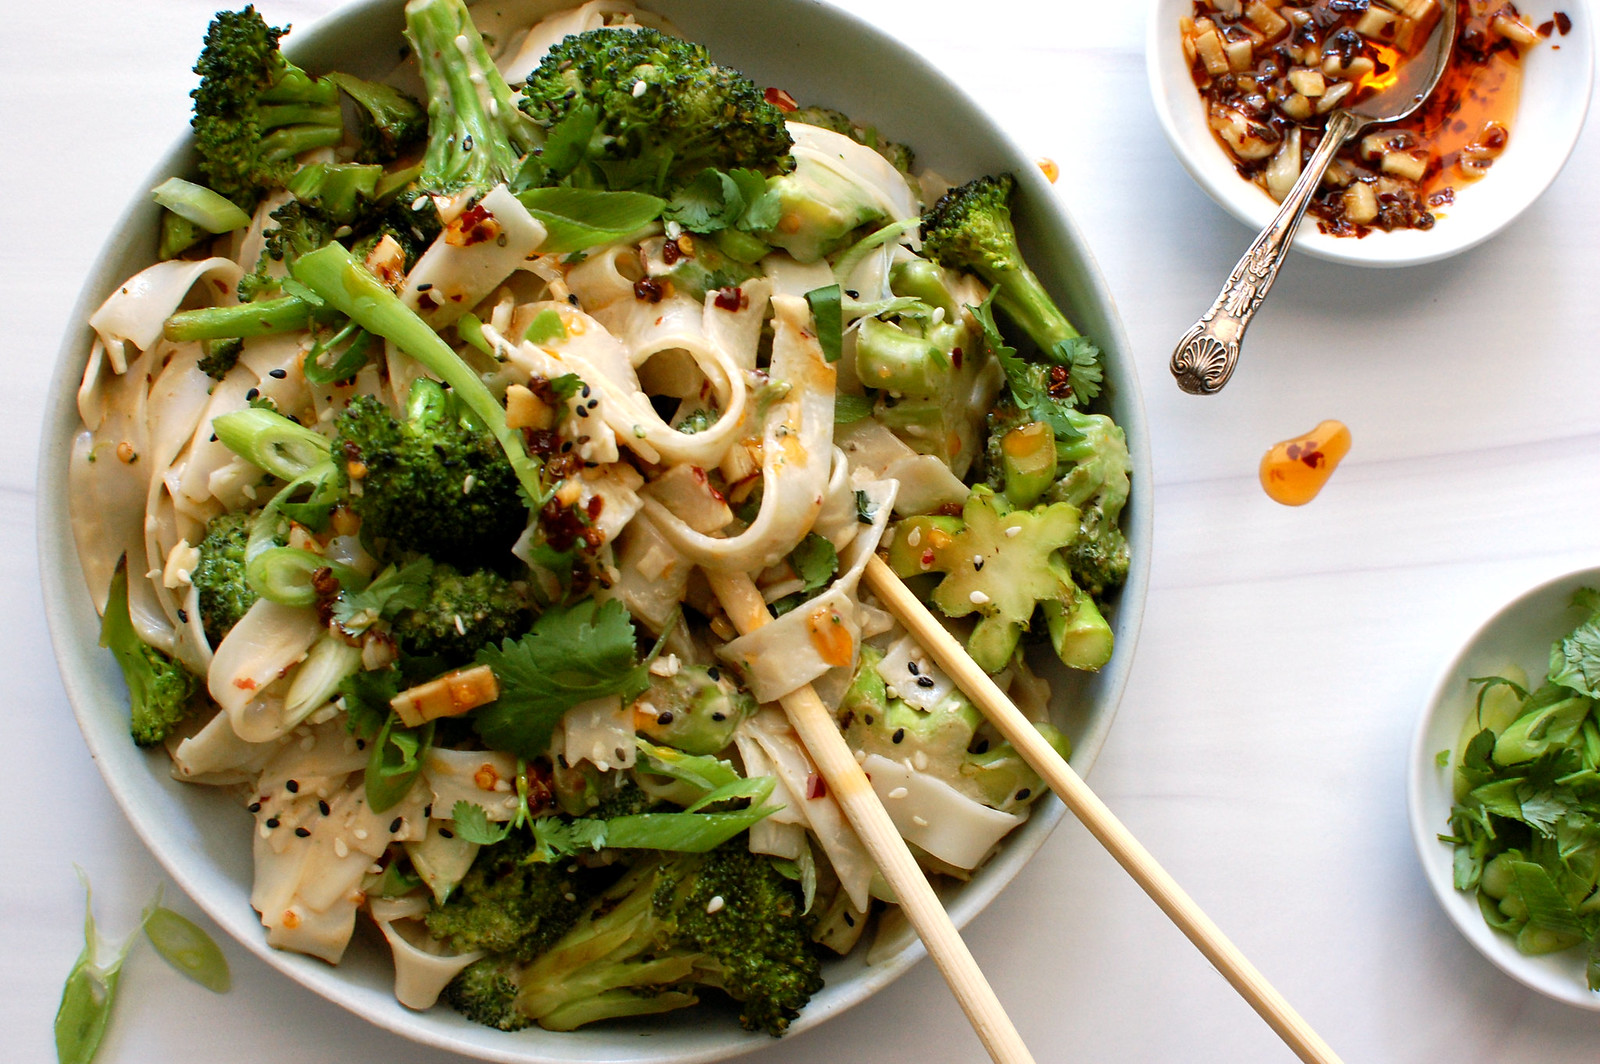 spicy Asian sesame rice noodle salad with broccoli